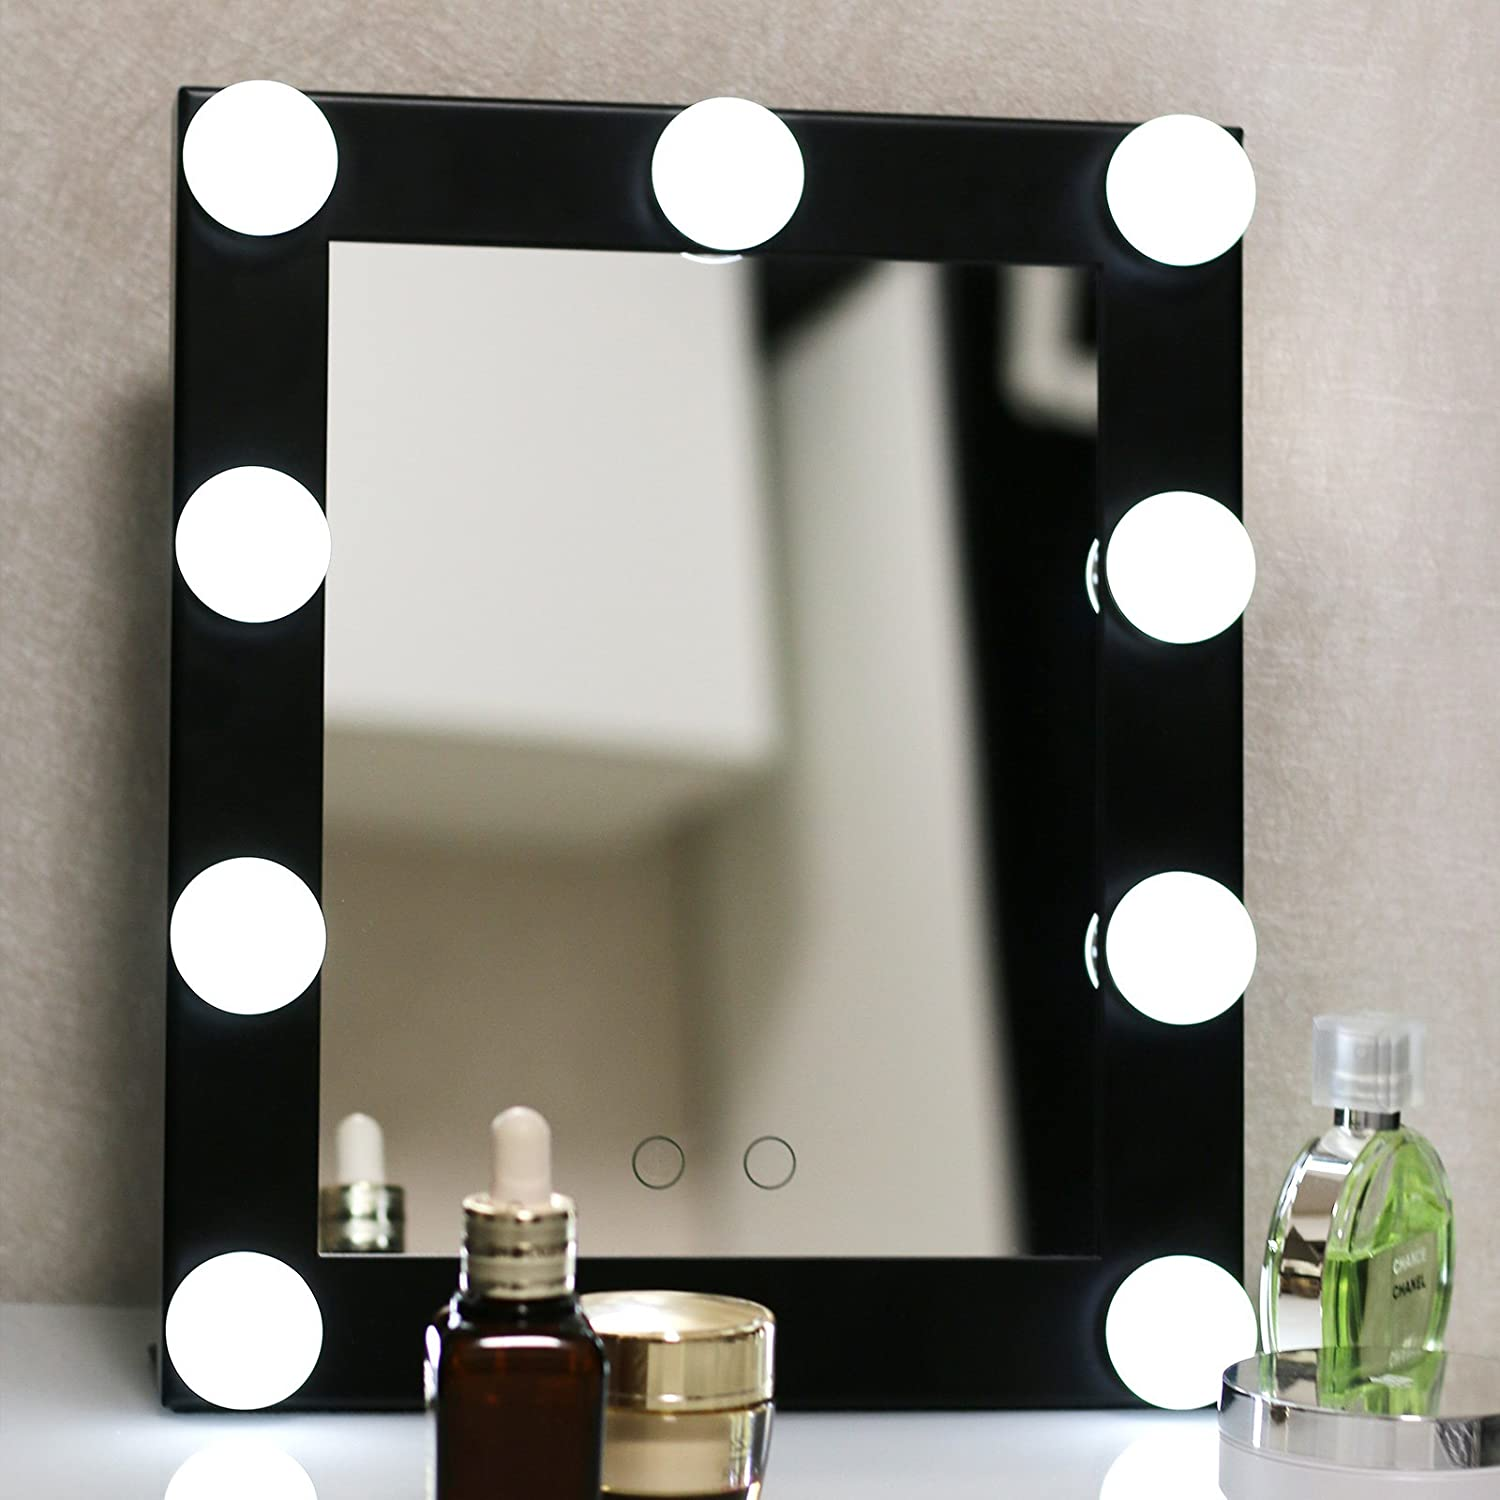 Amazon com  Yvettevans Hollywood Makeup Vanity Mirror with Light Tabletops  Lighted Mirror with Dimmer Stage Beauty Mirror Valentine s Day Gift Small. Amazon com  Yvettevans Hollywood Makeup Vanity Mirror with Light